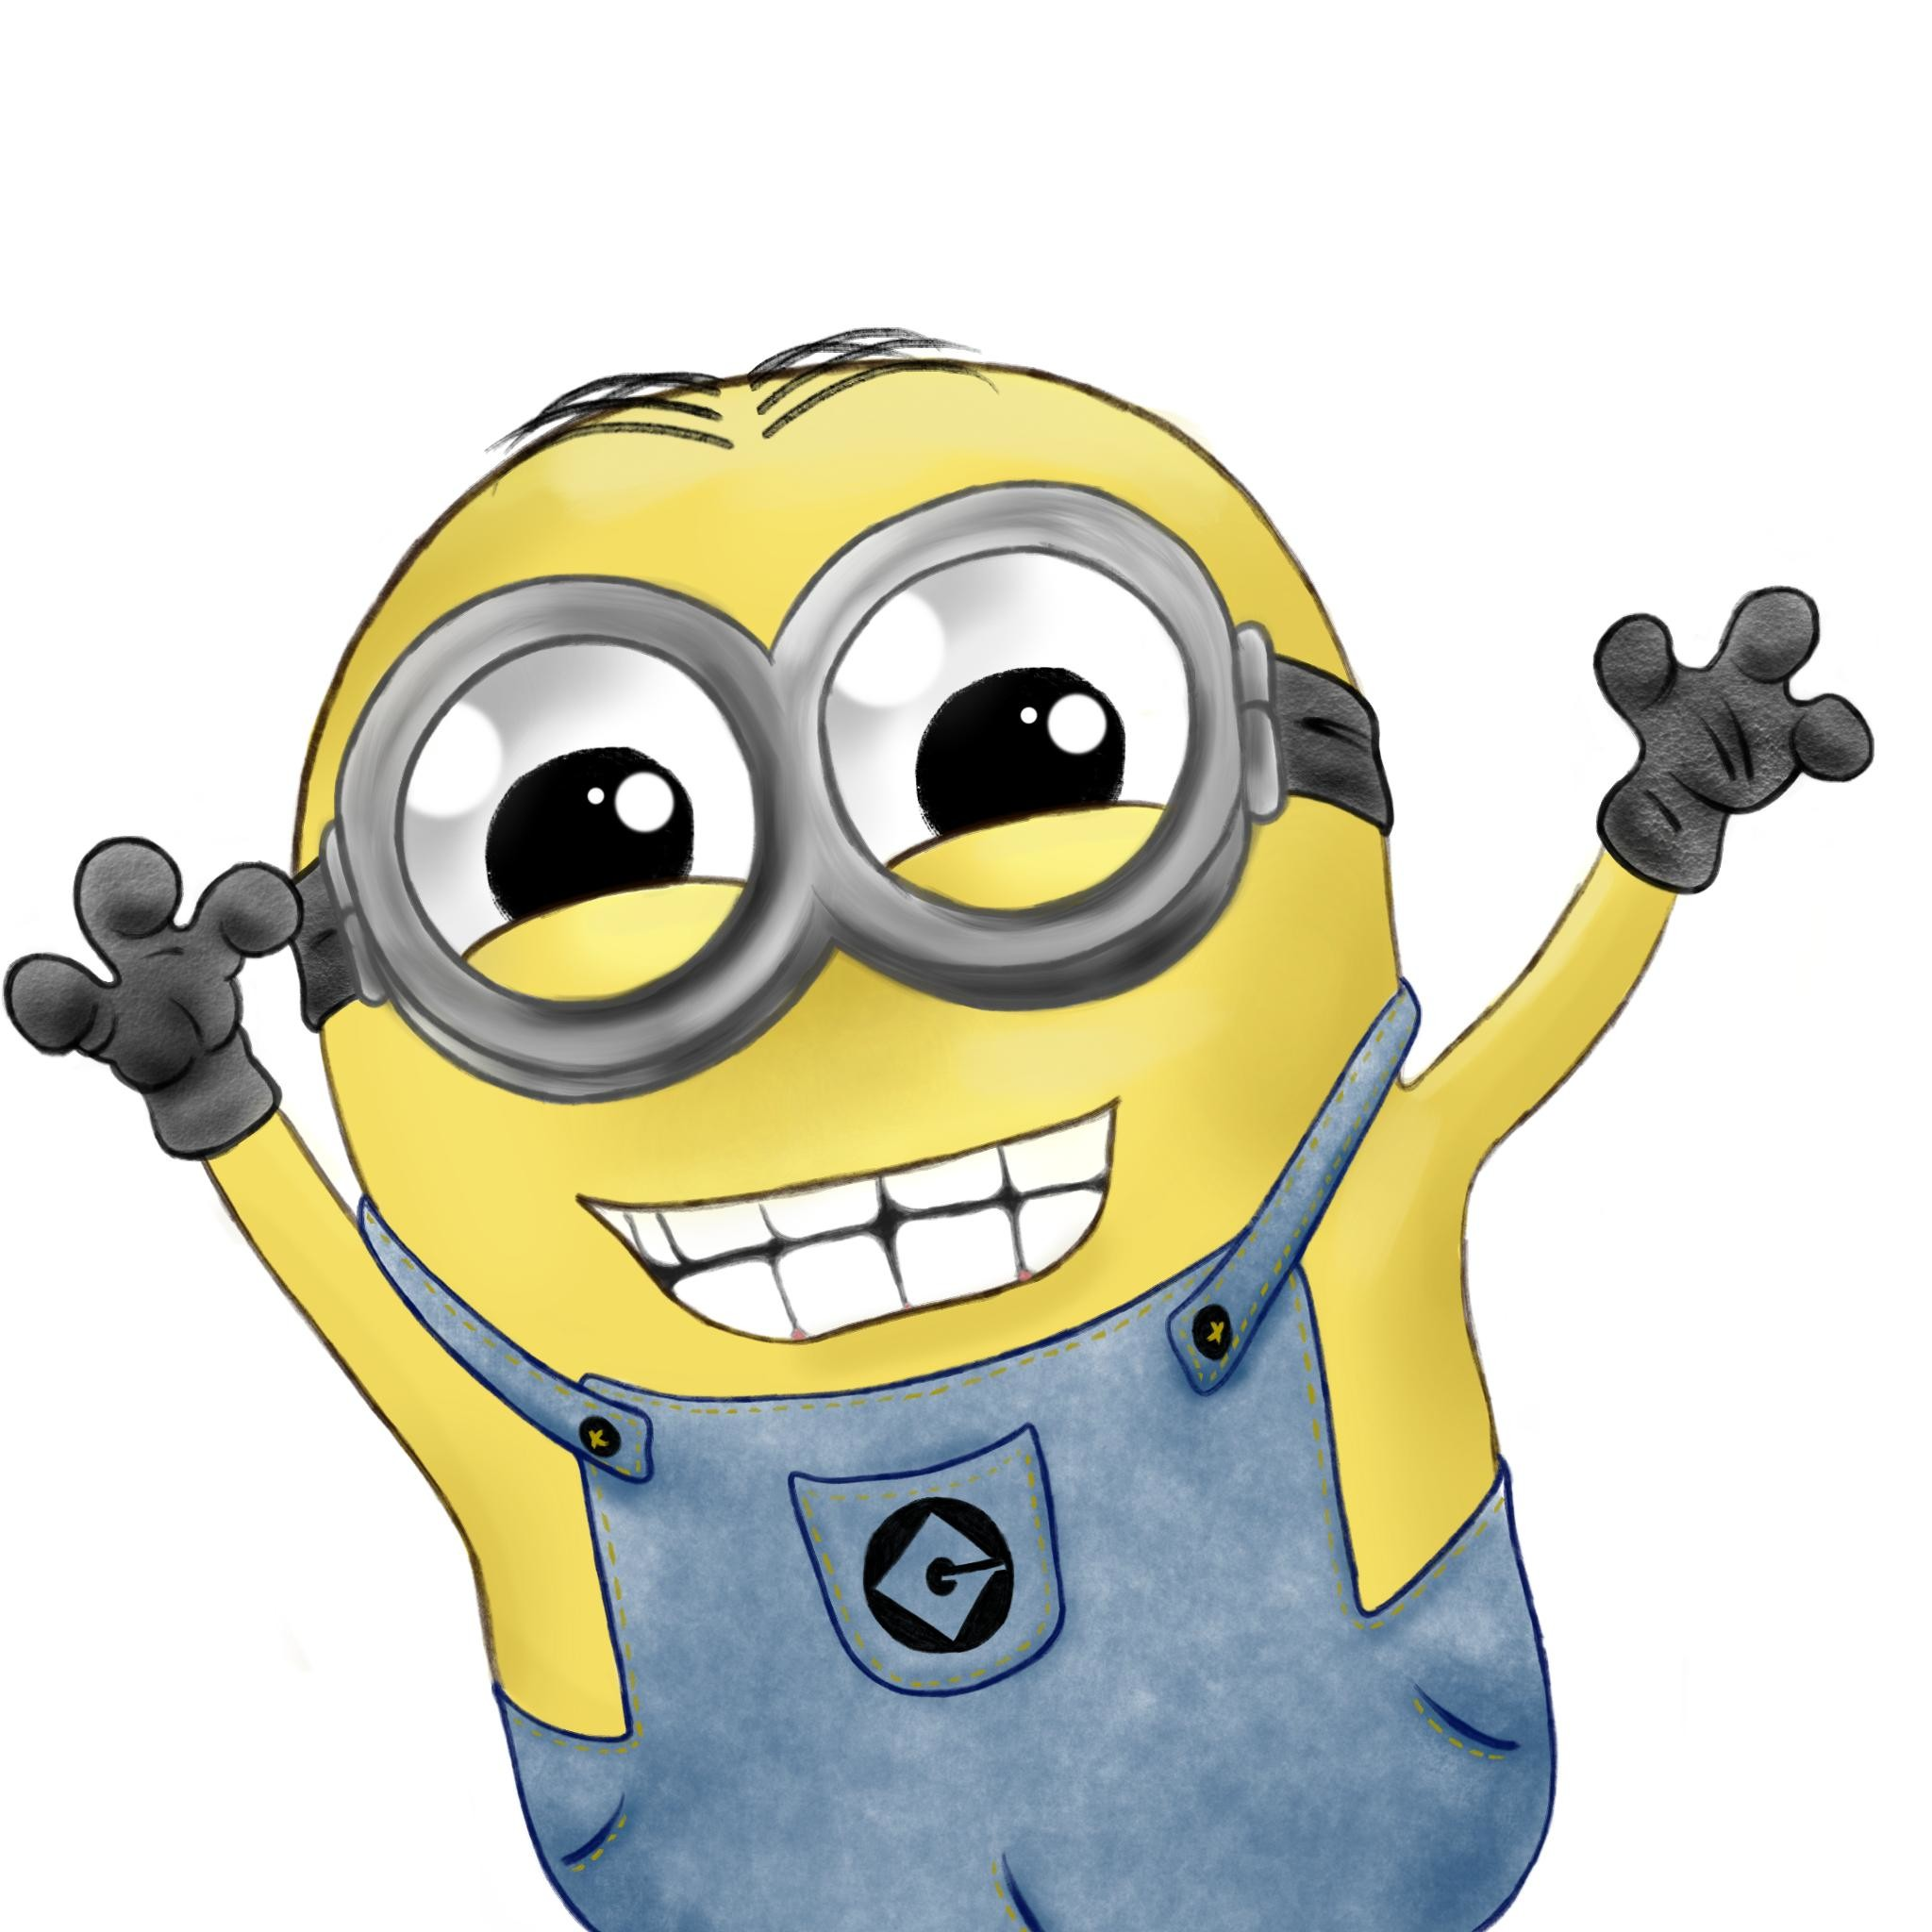 2048x2048 Minion, Ipad, Wallpaper, Hd Affffdacbfacb Raw, Funny, Yellow, Wallpaper,